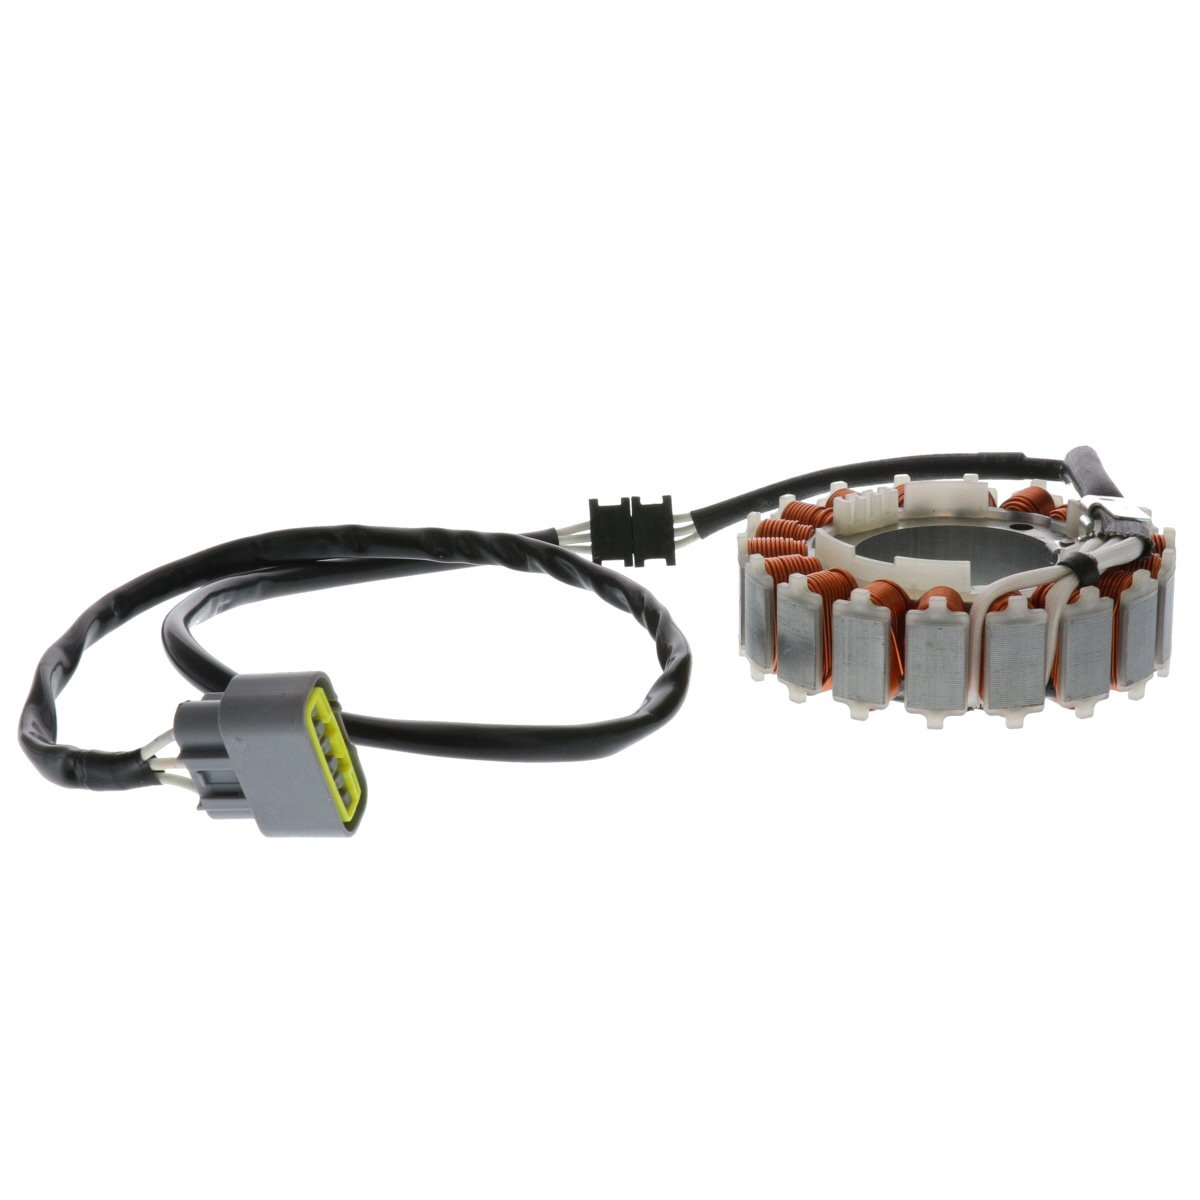 SPI, SM-01368, Stator Assembly for Snowmobiles - Replaces Arctic Cat OEM # 3020-437, Replaces Yamaha OEM # 8HF-81410-00-00